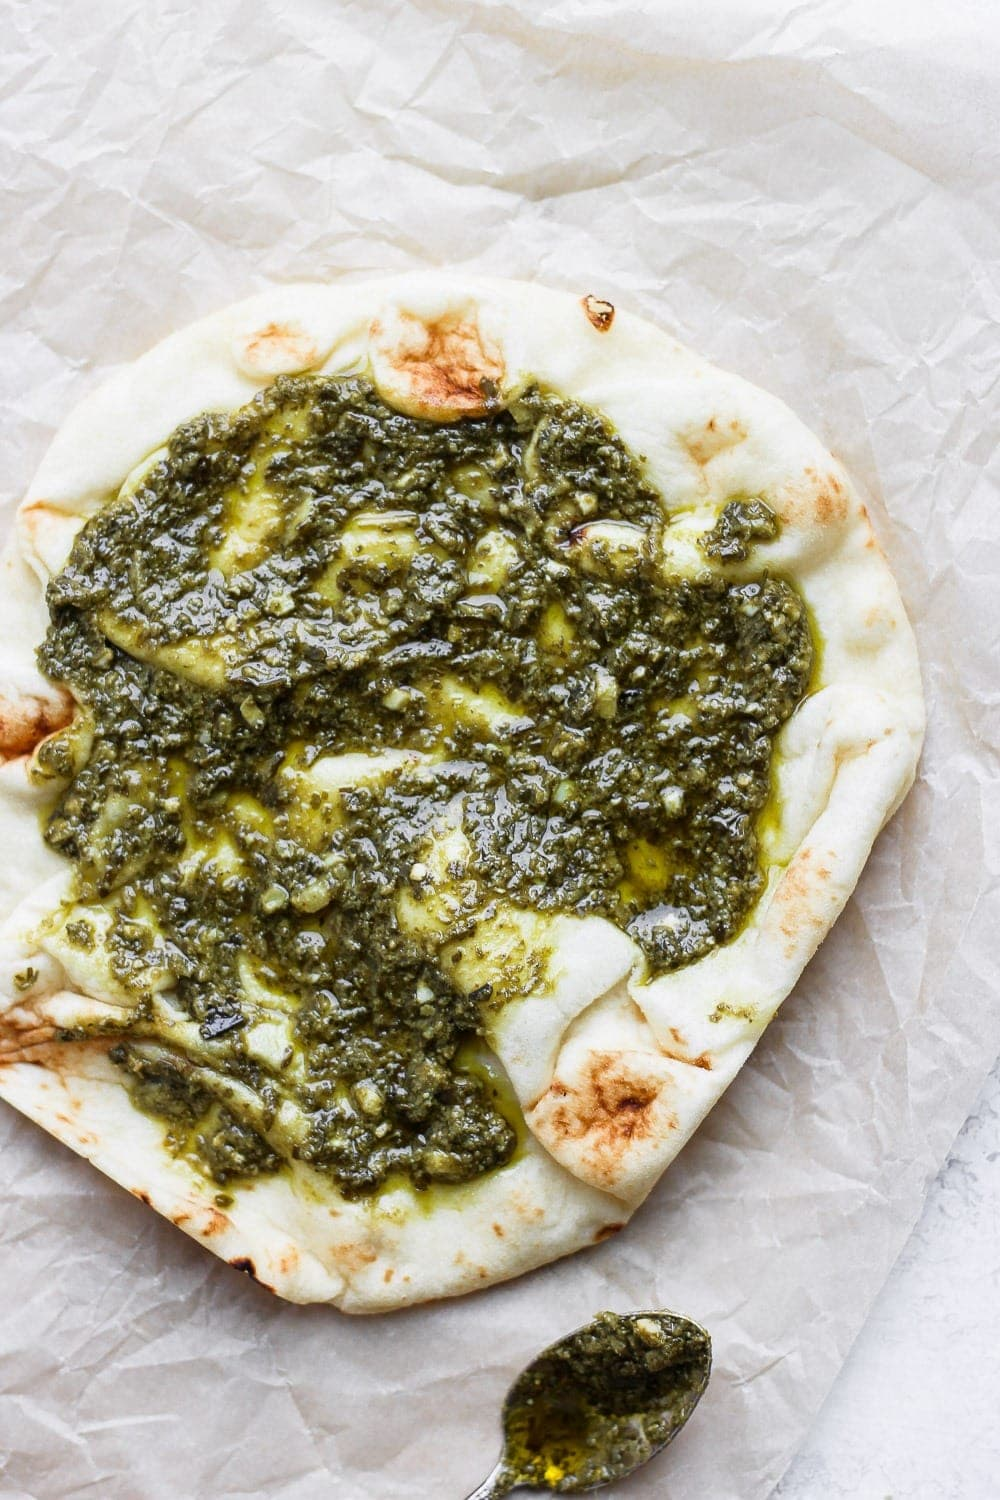 Naan pizza topped with pesto.